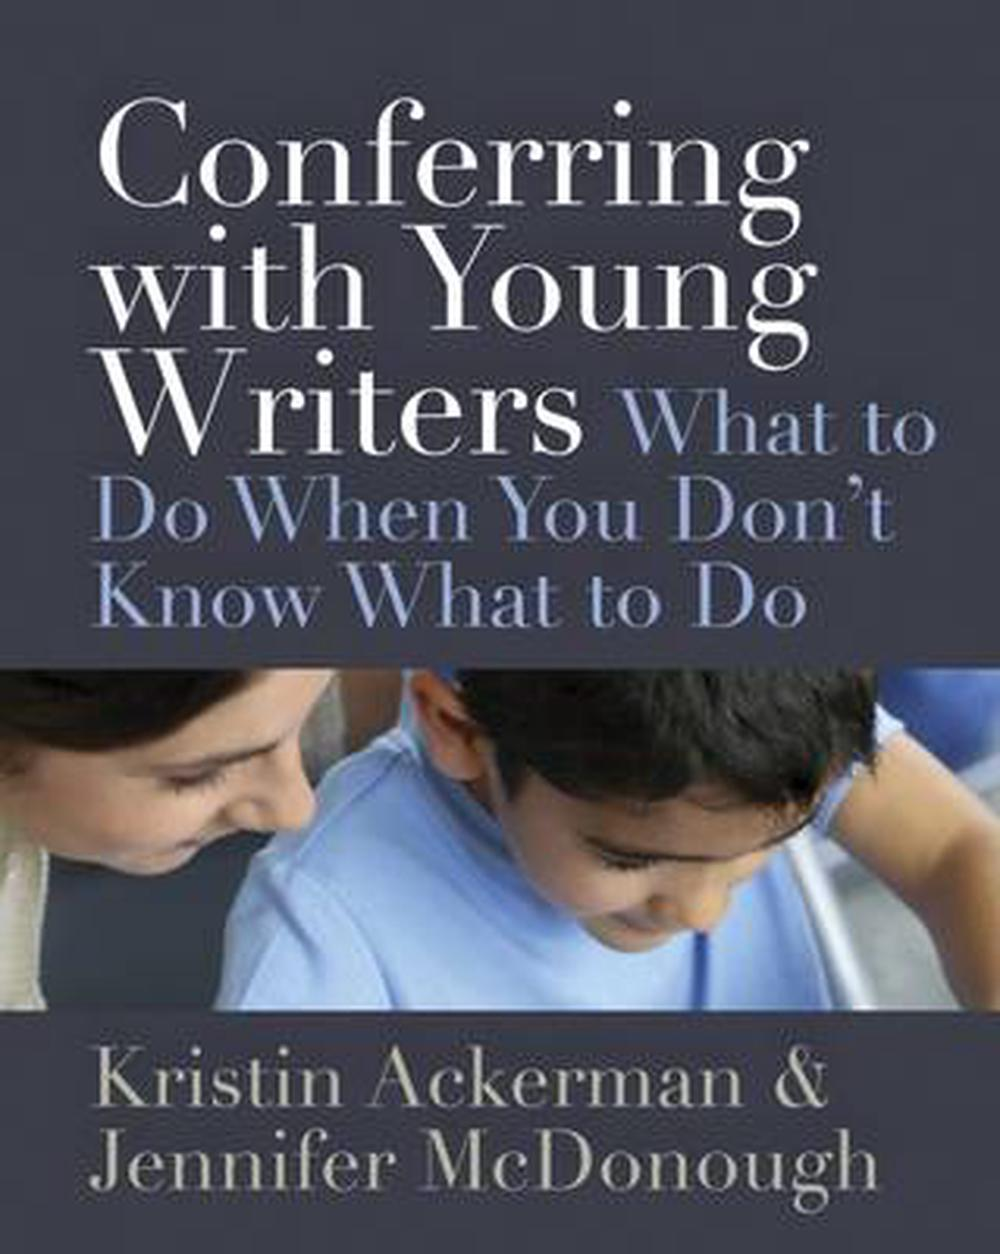 Conferring with Young Writers: What to Do When You Don't Know What to Do by Kristin Ackerman, ISBN: 9781625310392